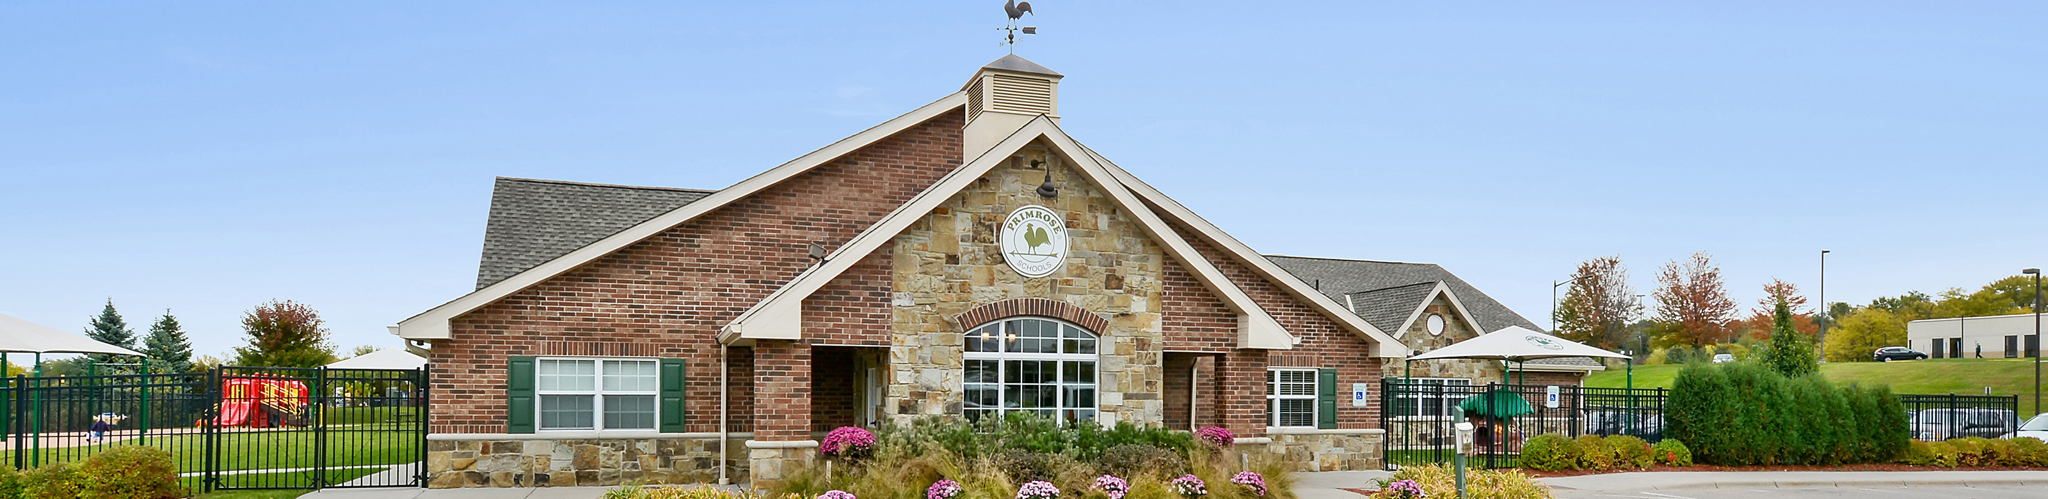 Exterior of a Primrose School of Lakeville North